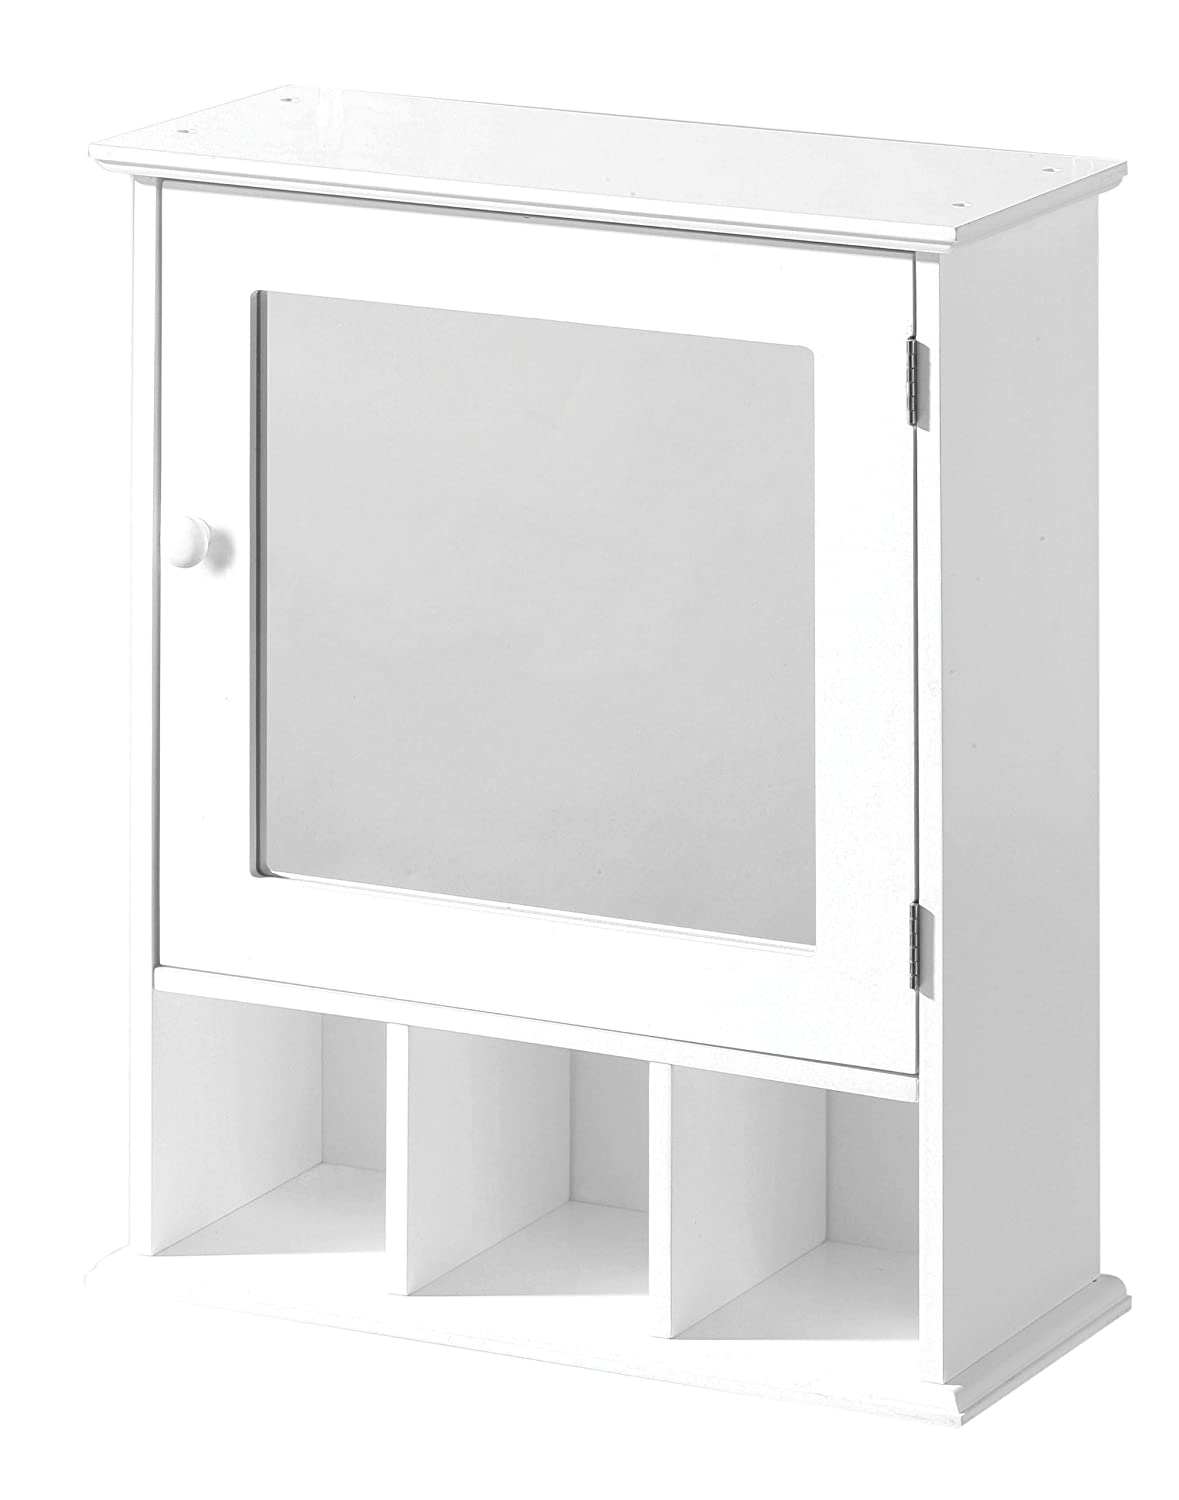 Premier Housewares Bathroom Cabinet with Mirrored Door and 3 Compartments, 58 x 46 x 20 cm - White 2401451 PREM-2401451_White